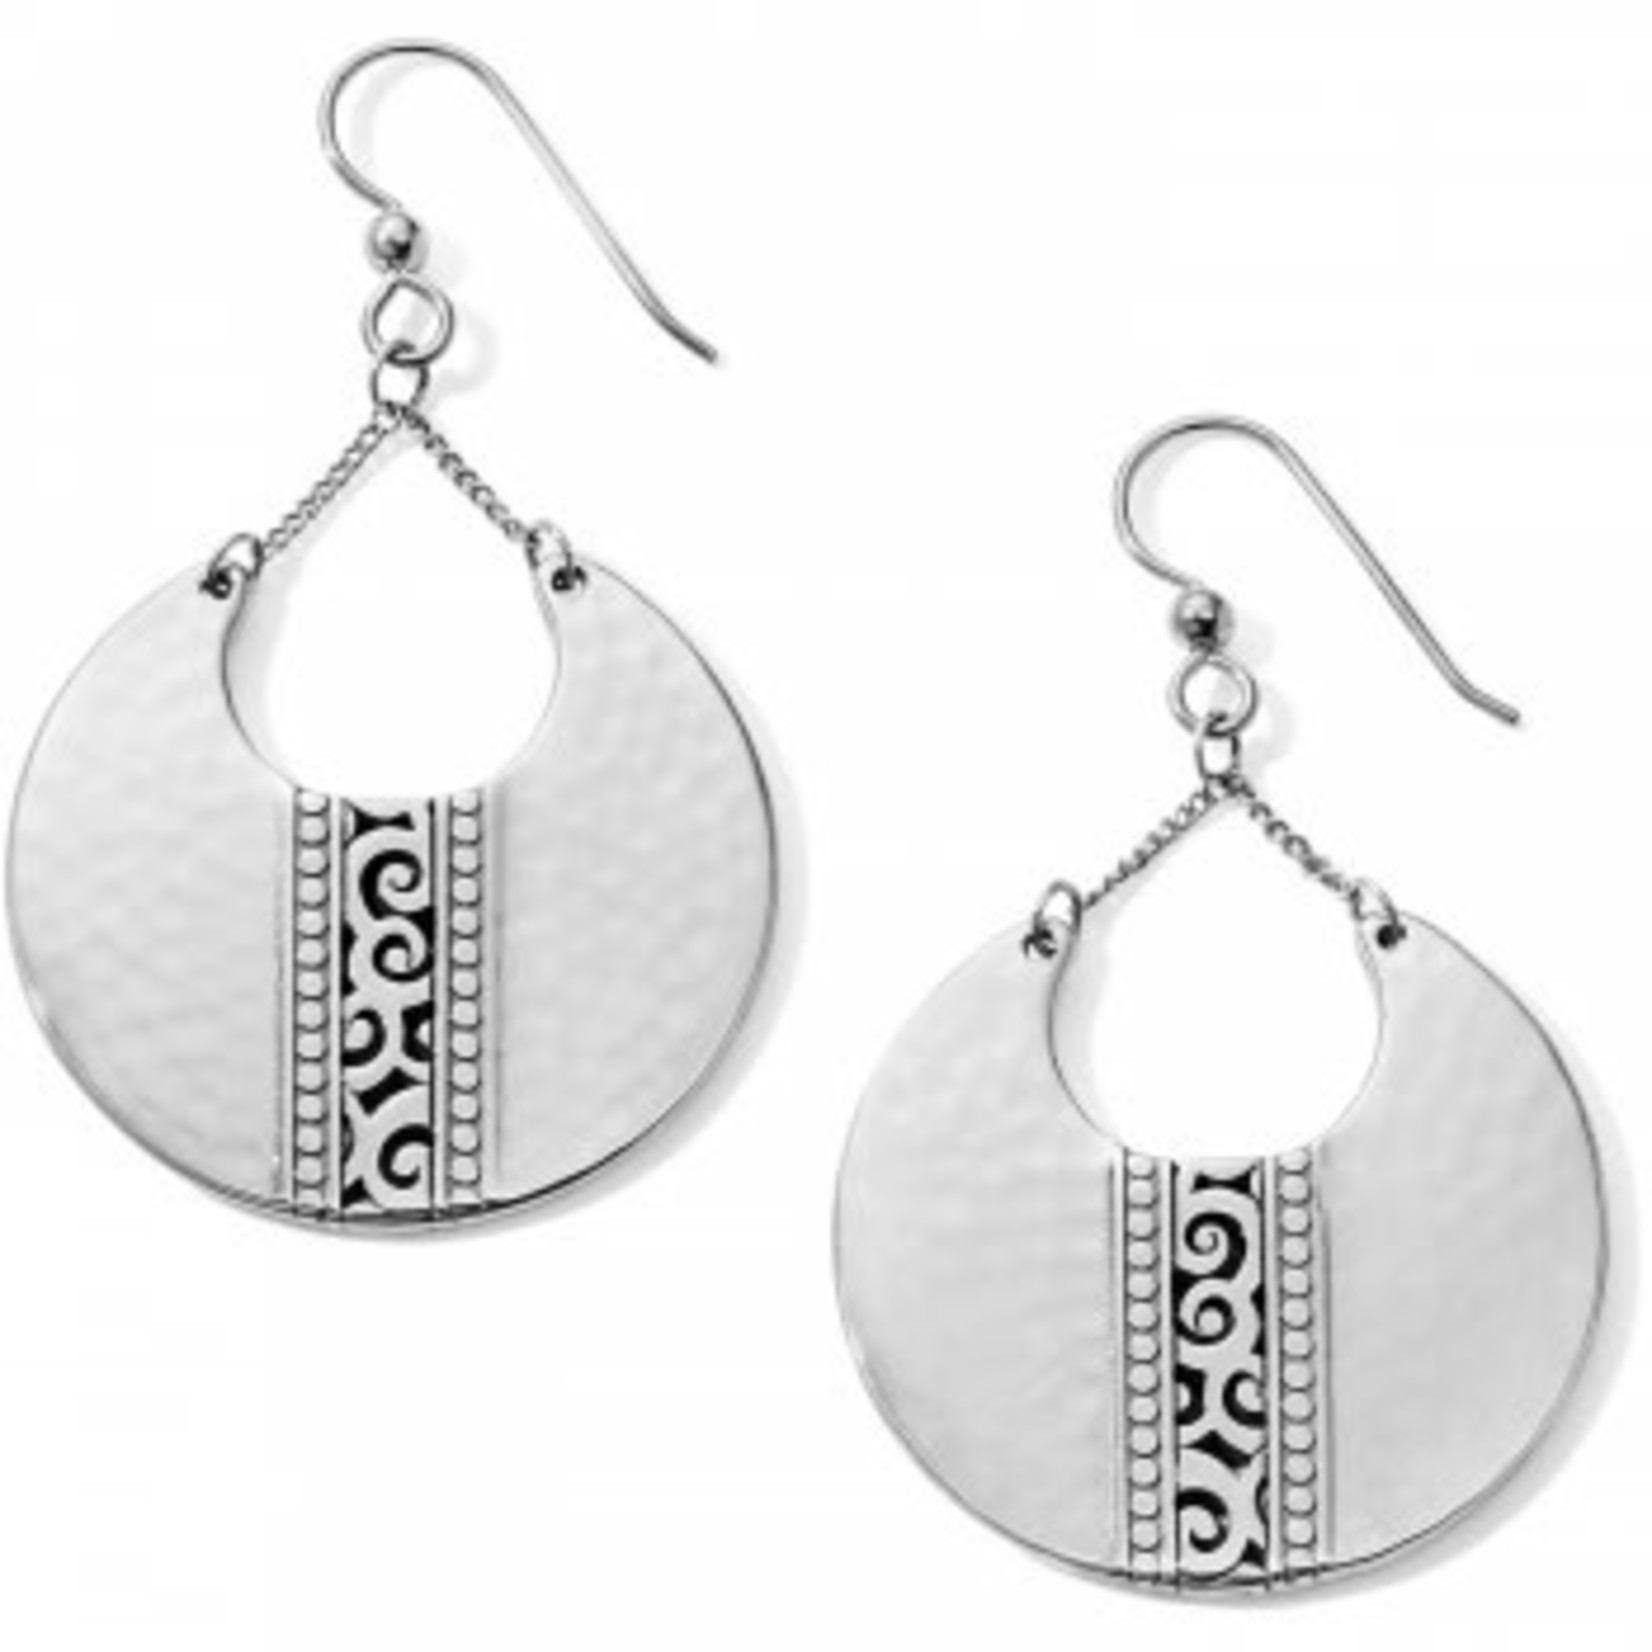 Brighton Earrings/Mingle Large Disc On Chains Fr Wr